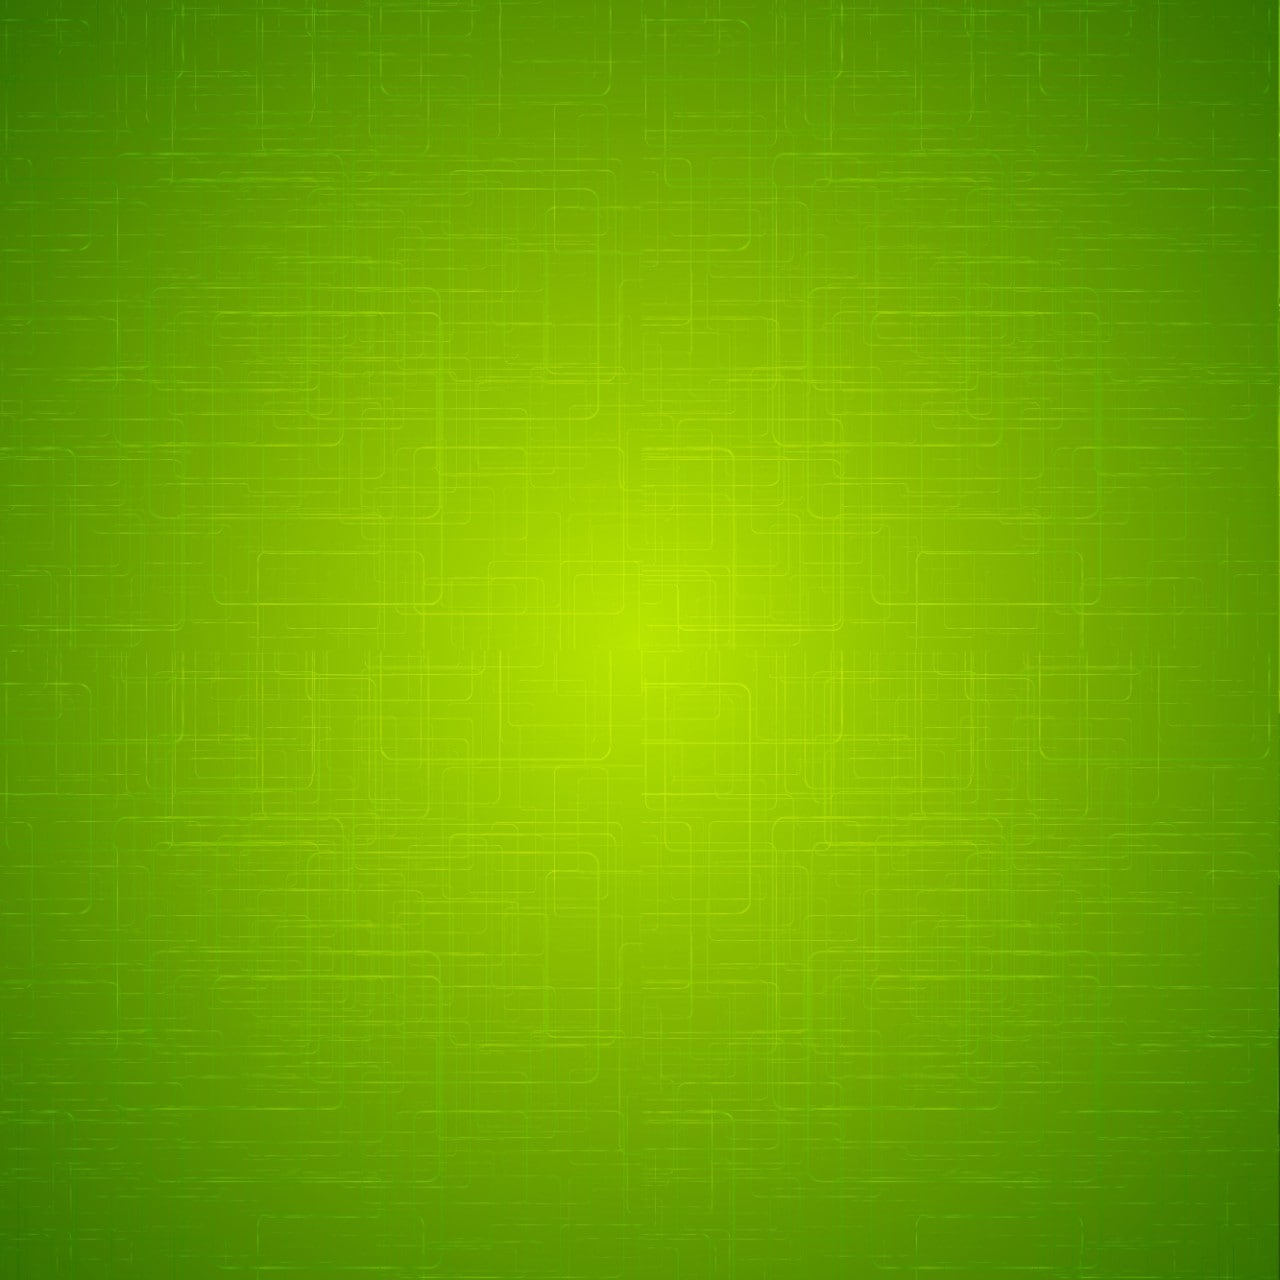 Green Yellow Square Abstract Background